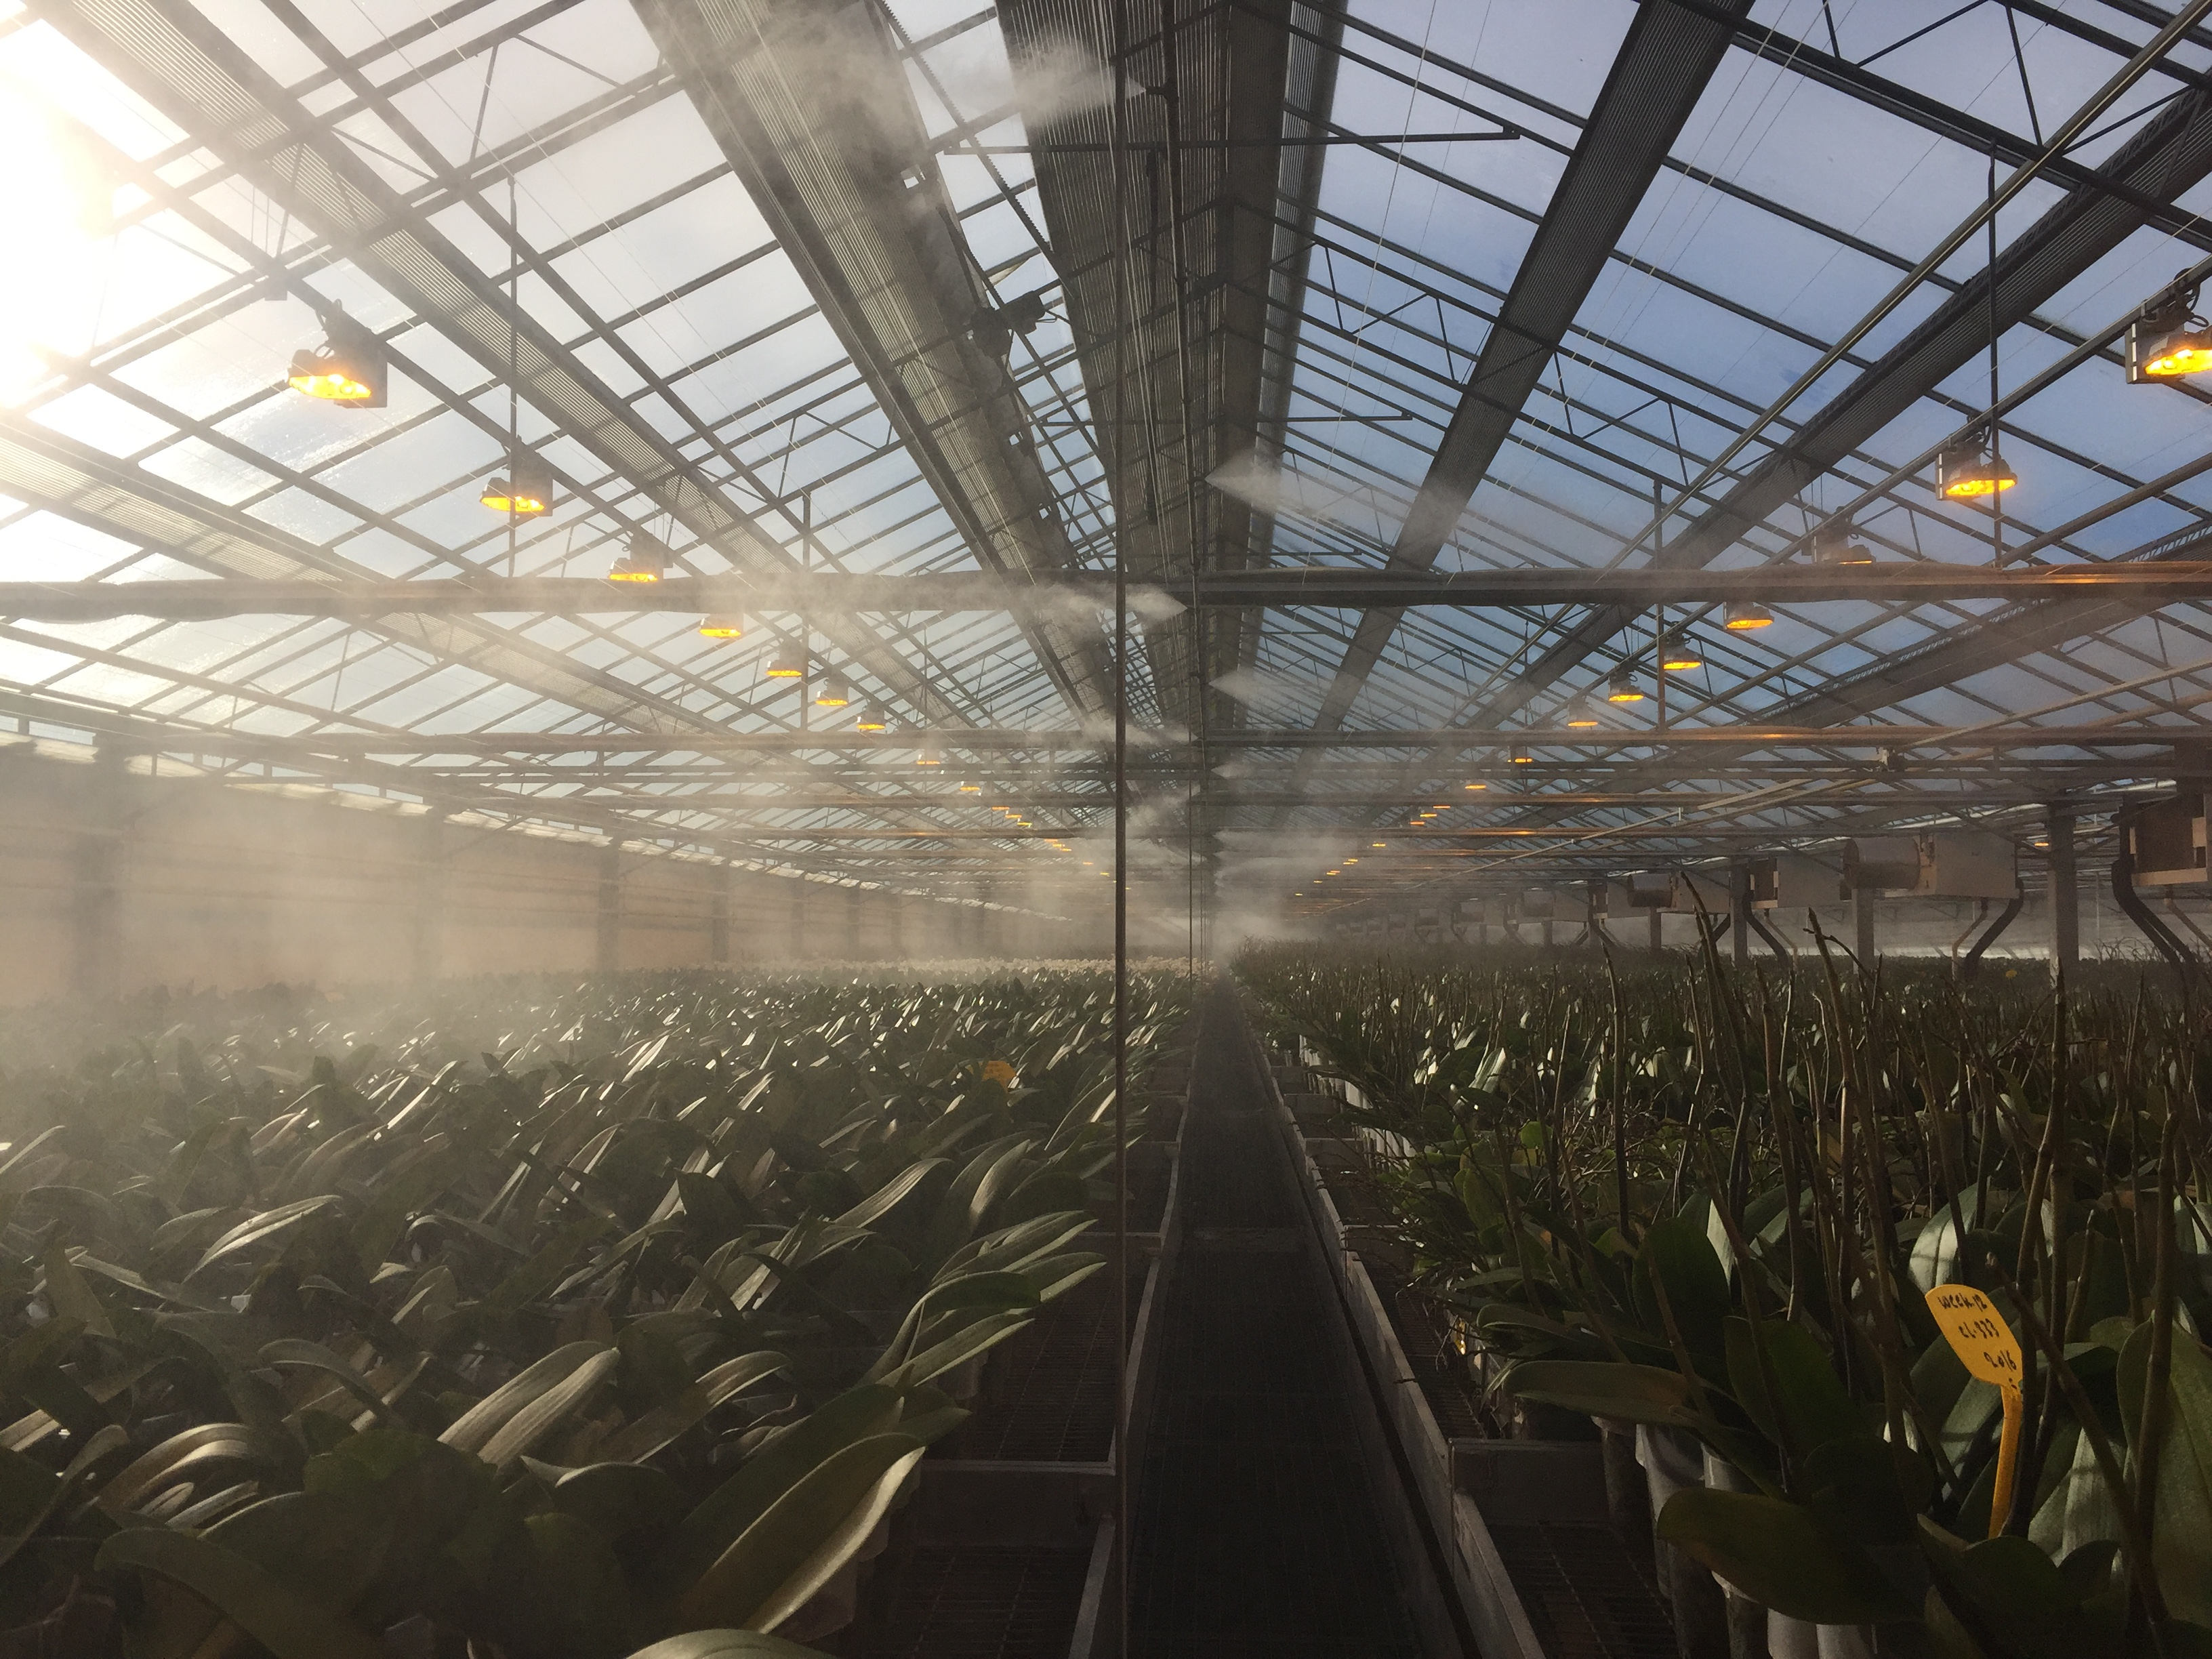 Humidity in cultivation